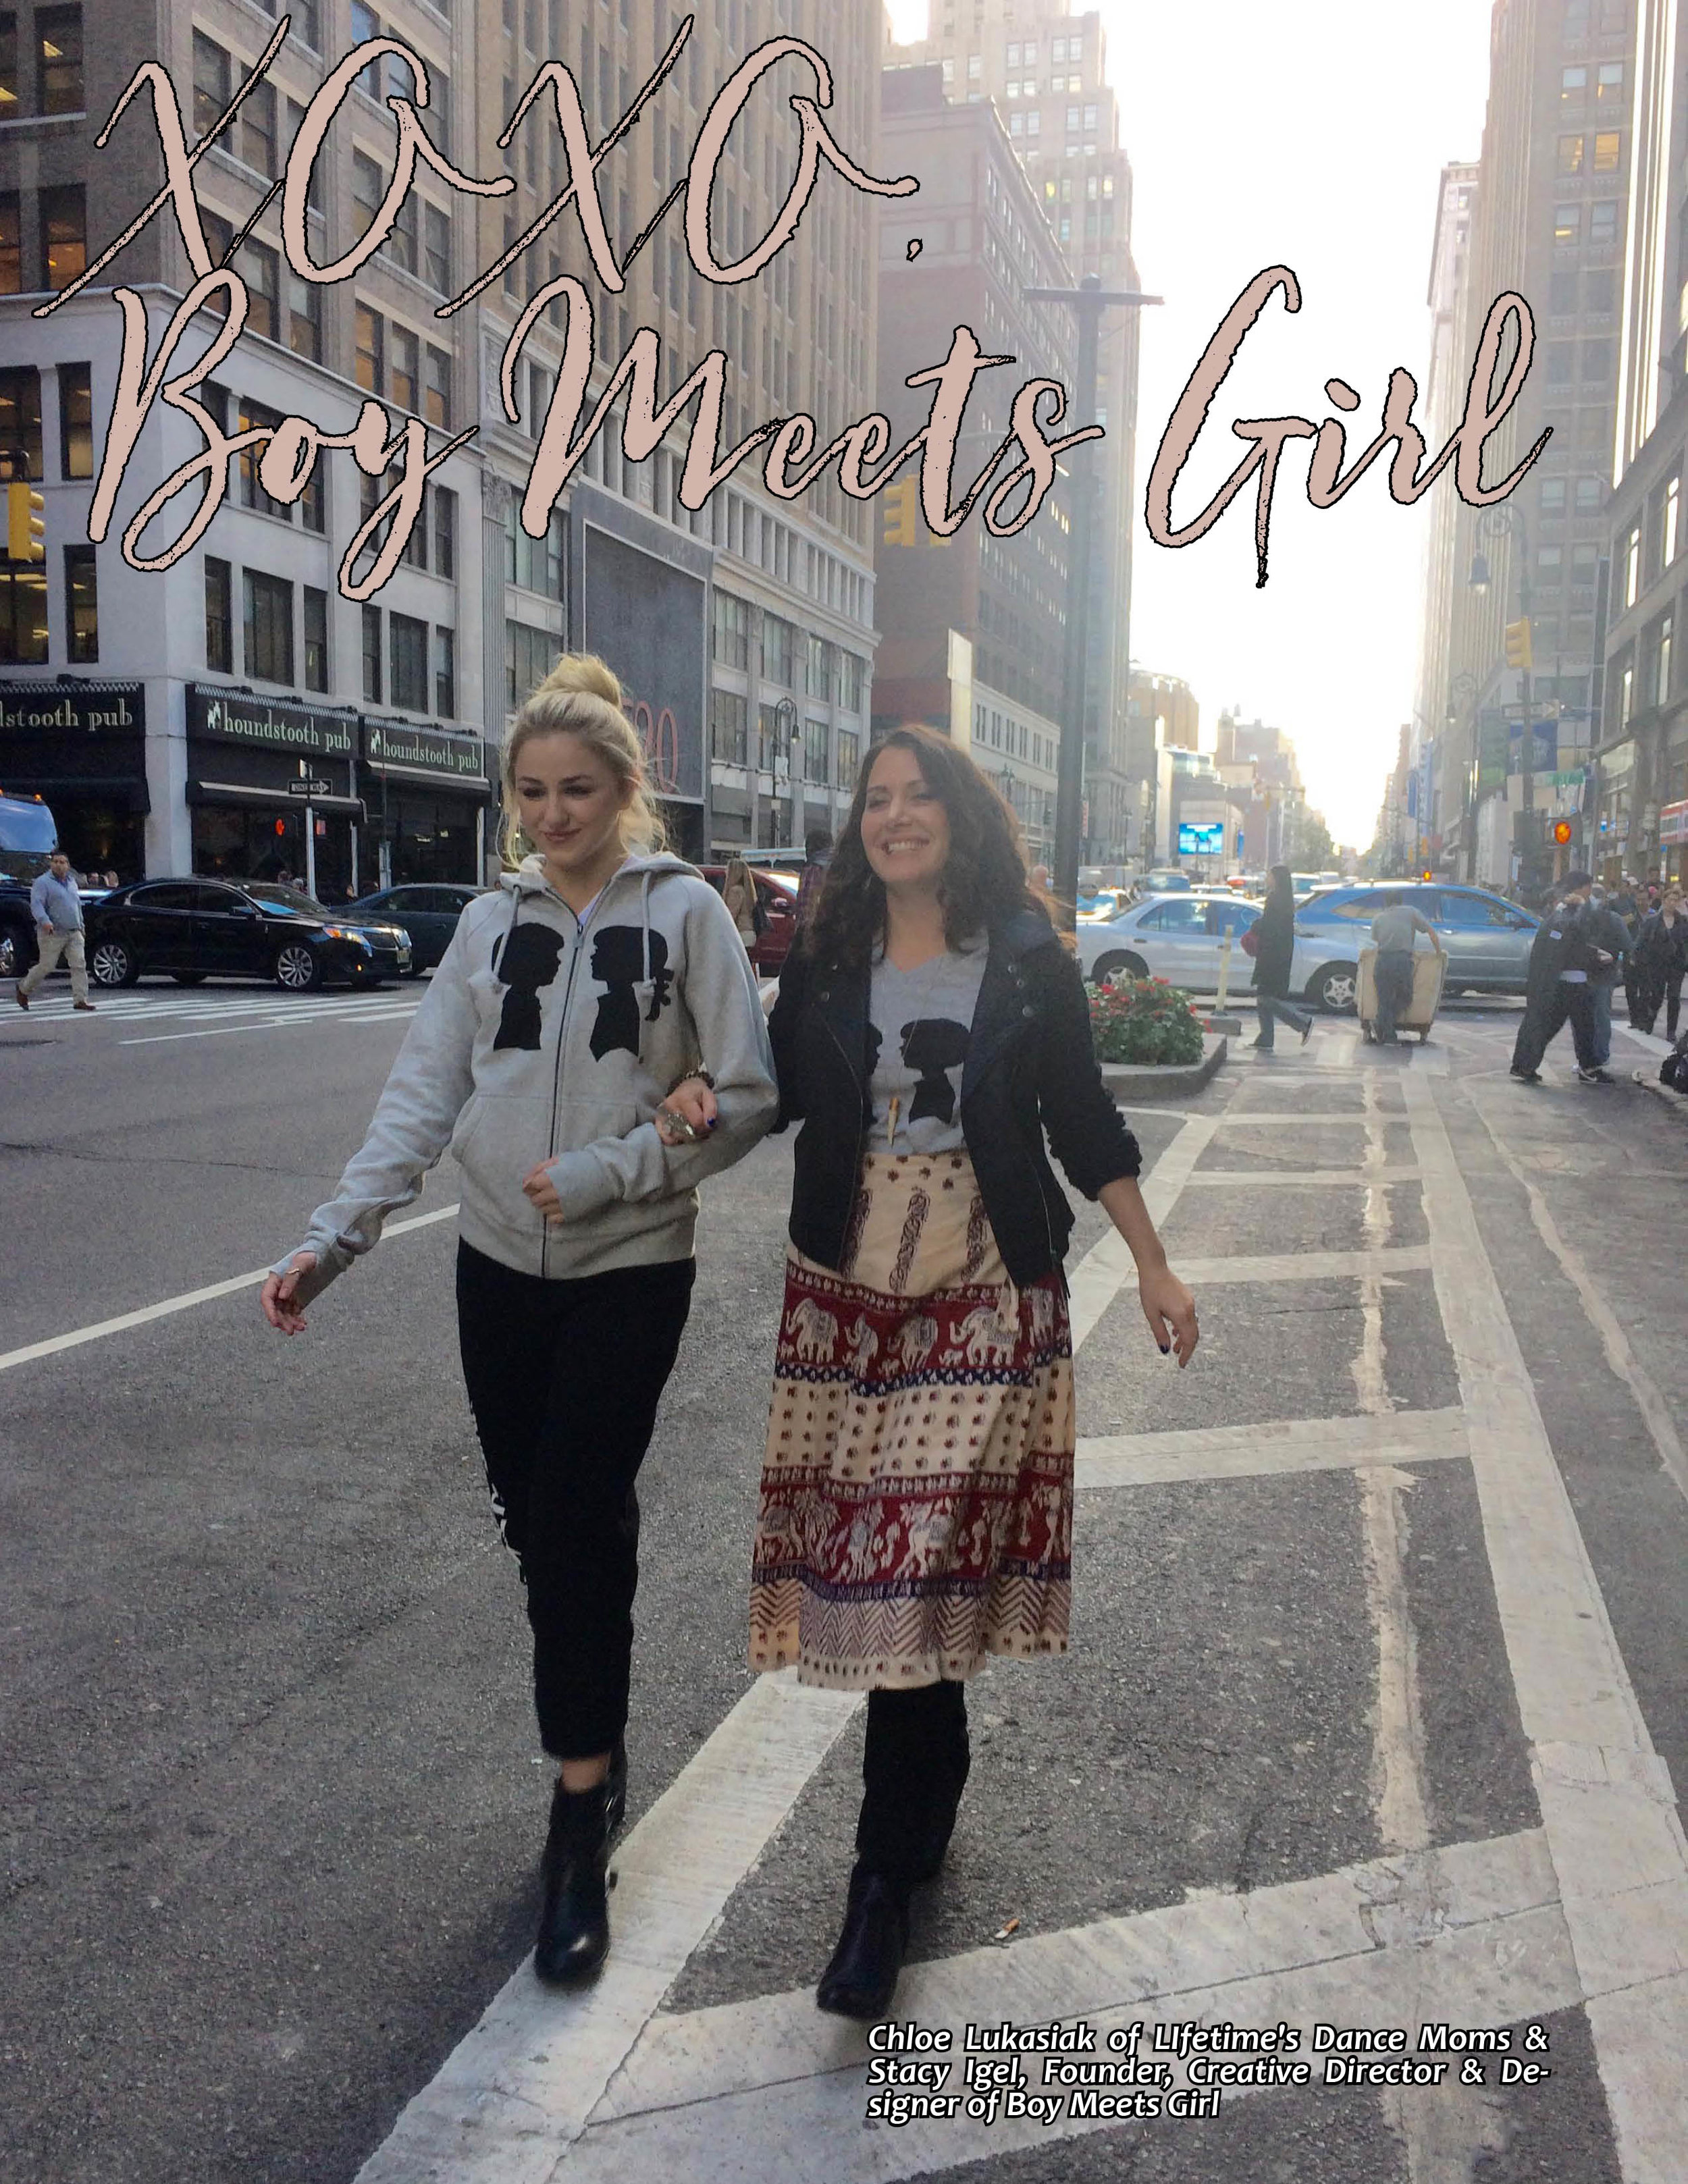 Chloe Lukasiak  of  Lifetime's Dance Moms  walks with Founder/Creative Director, and Designer of  Boy Meets Girl  -  Stacy Igel